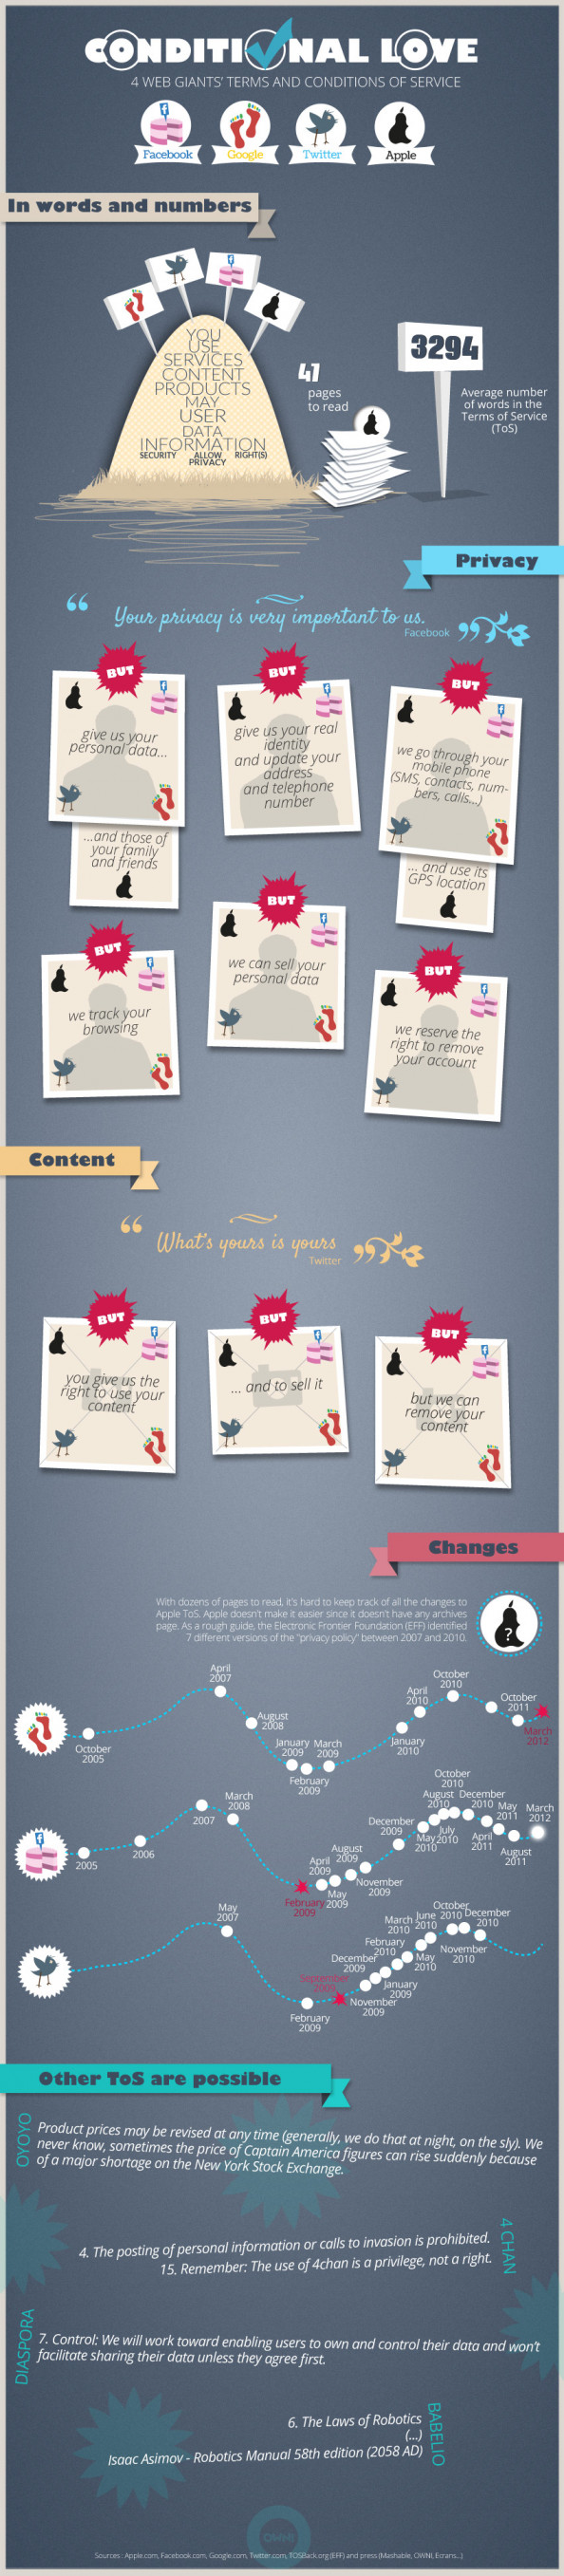 Conditional Love Infographic